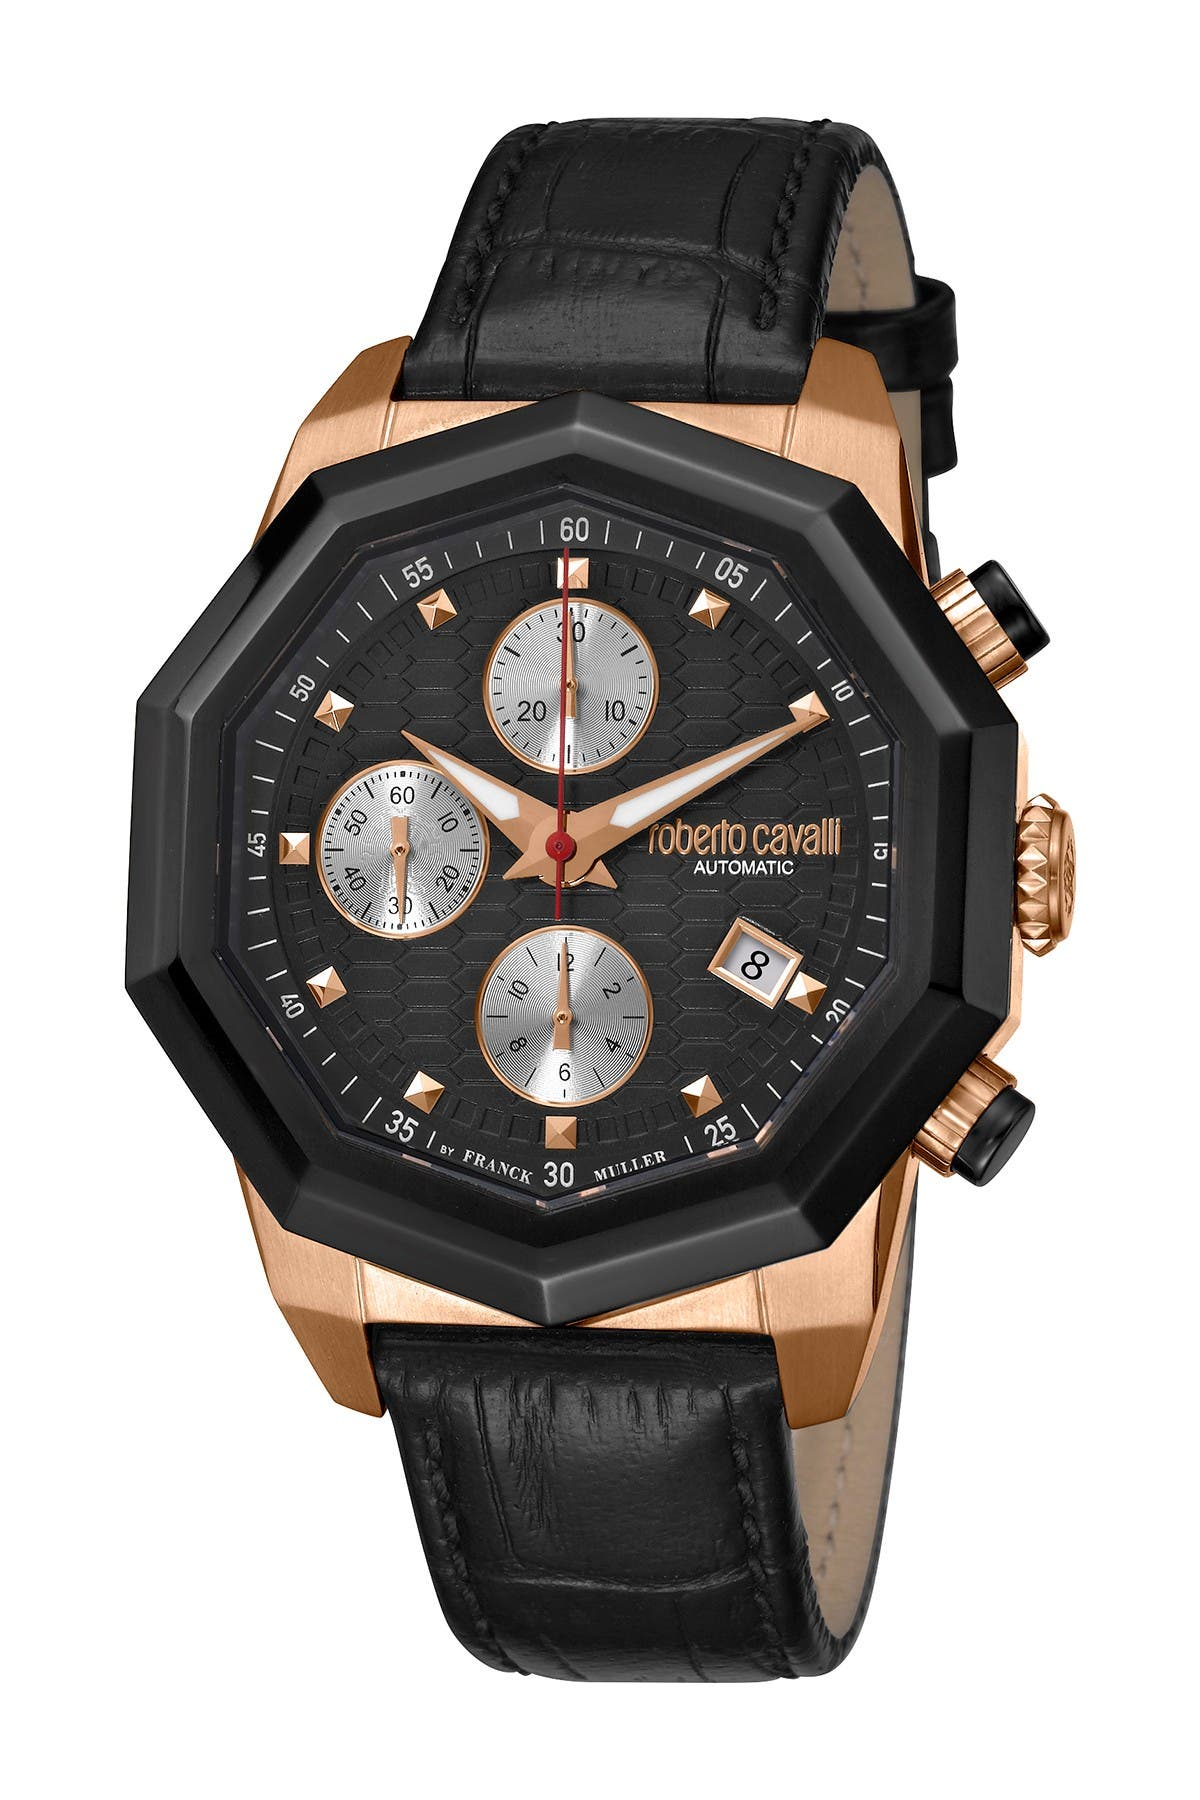 Image of ROBERTO CAVALLI BY FRANCK MULLER Men's Swiss Automatic Croc Embossed Leather Strap Watch, 43mm